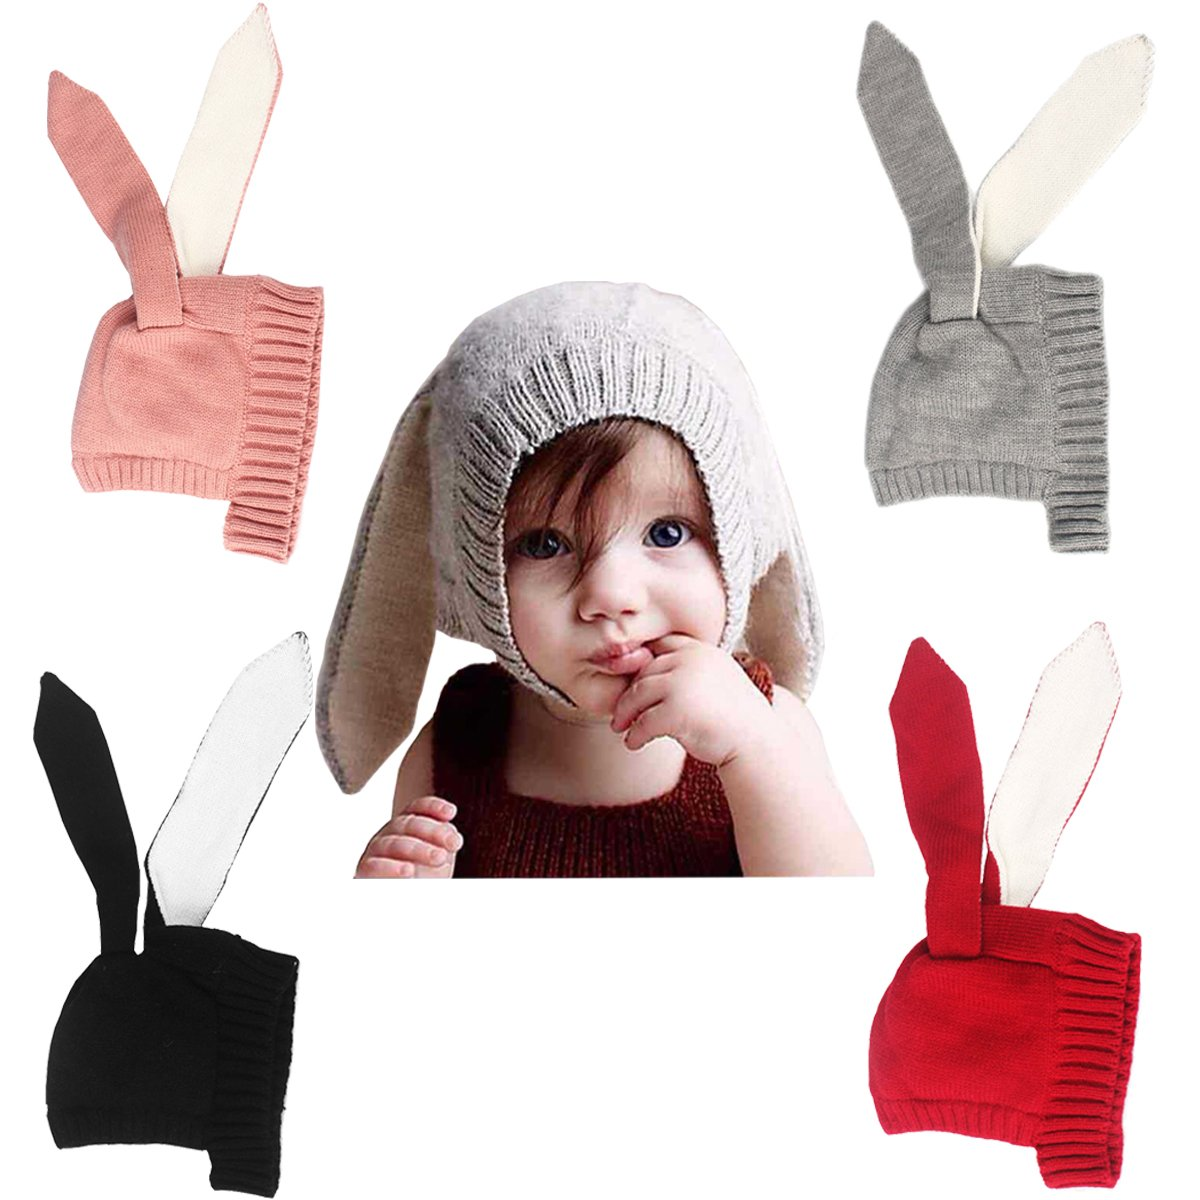 xsby Baby Kids Boy Girl Knitted Crochet Rabbit Ear Beanie Winter Warm Hat Cap Beanie hat for Girls